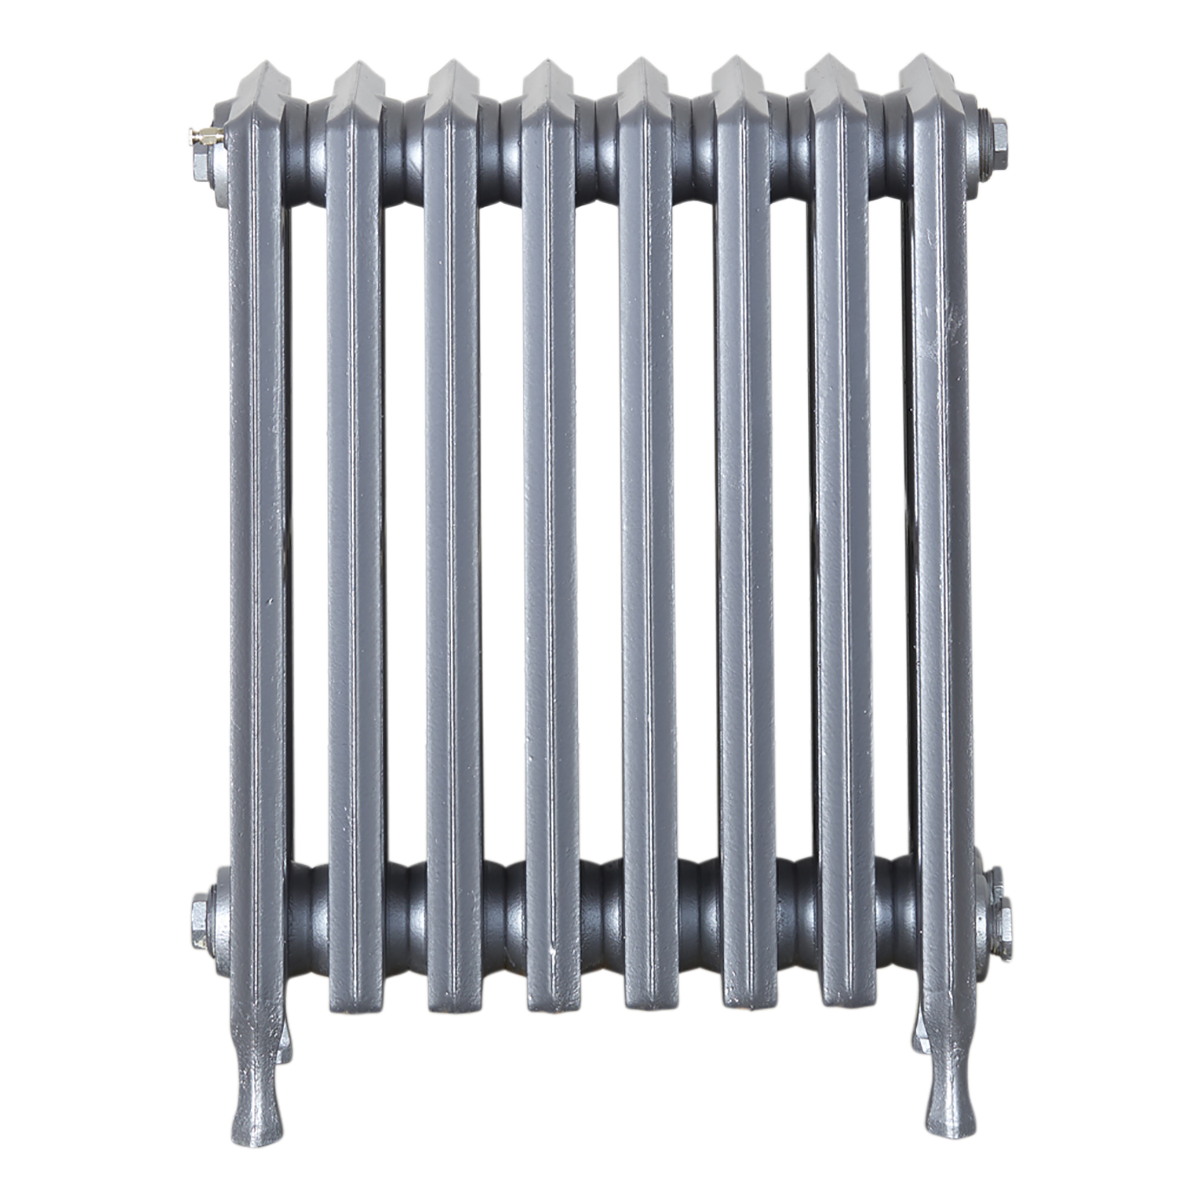 Ironworks Radiators Inc. refurbished cast iron radiator Rockford in Pewter metallic